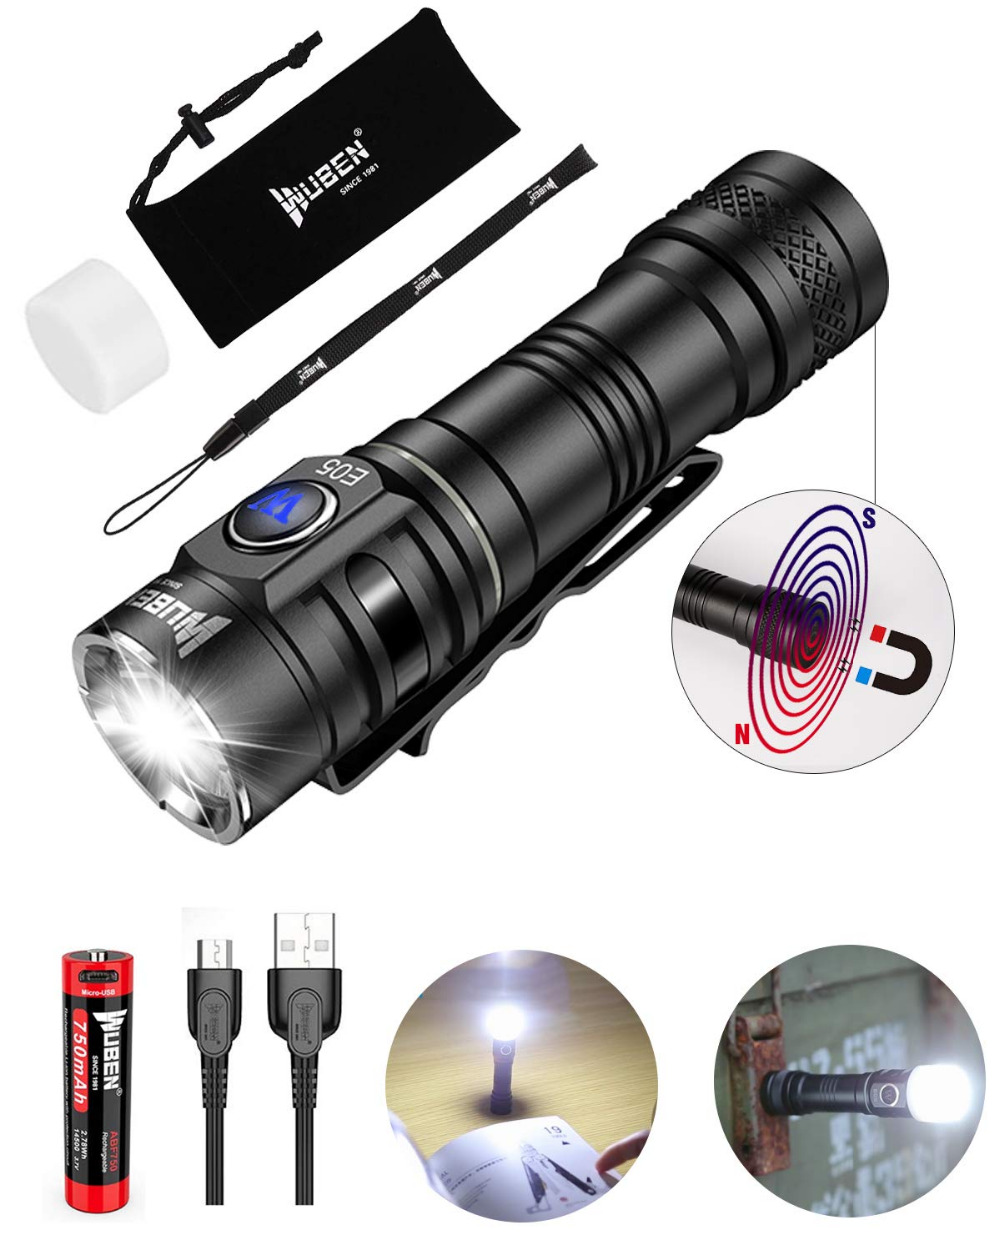 WUBEN E05 EDC LED Flashlight 900 Lumens USB Rechargeable 6 Modes Handsfree Waterproof Mini Torch with 14500 Battery Included